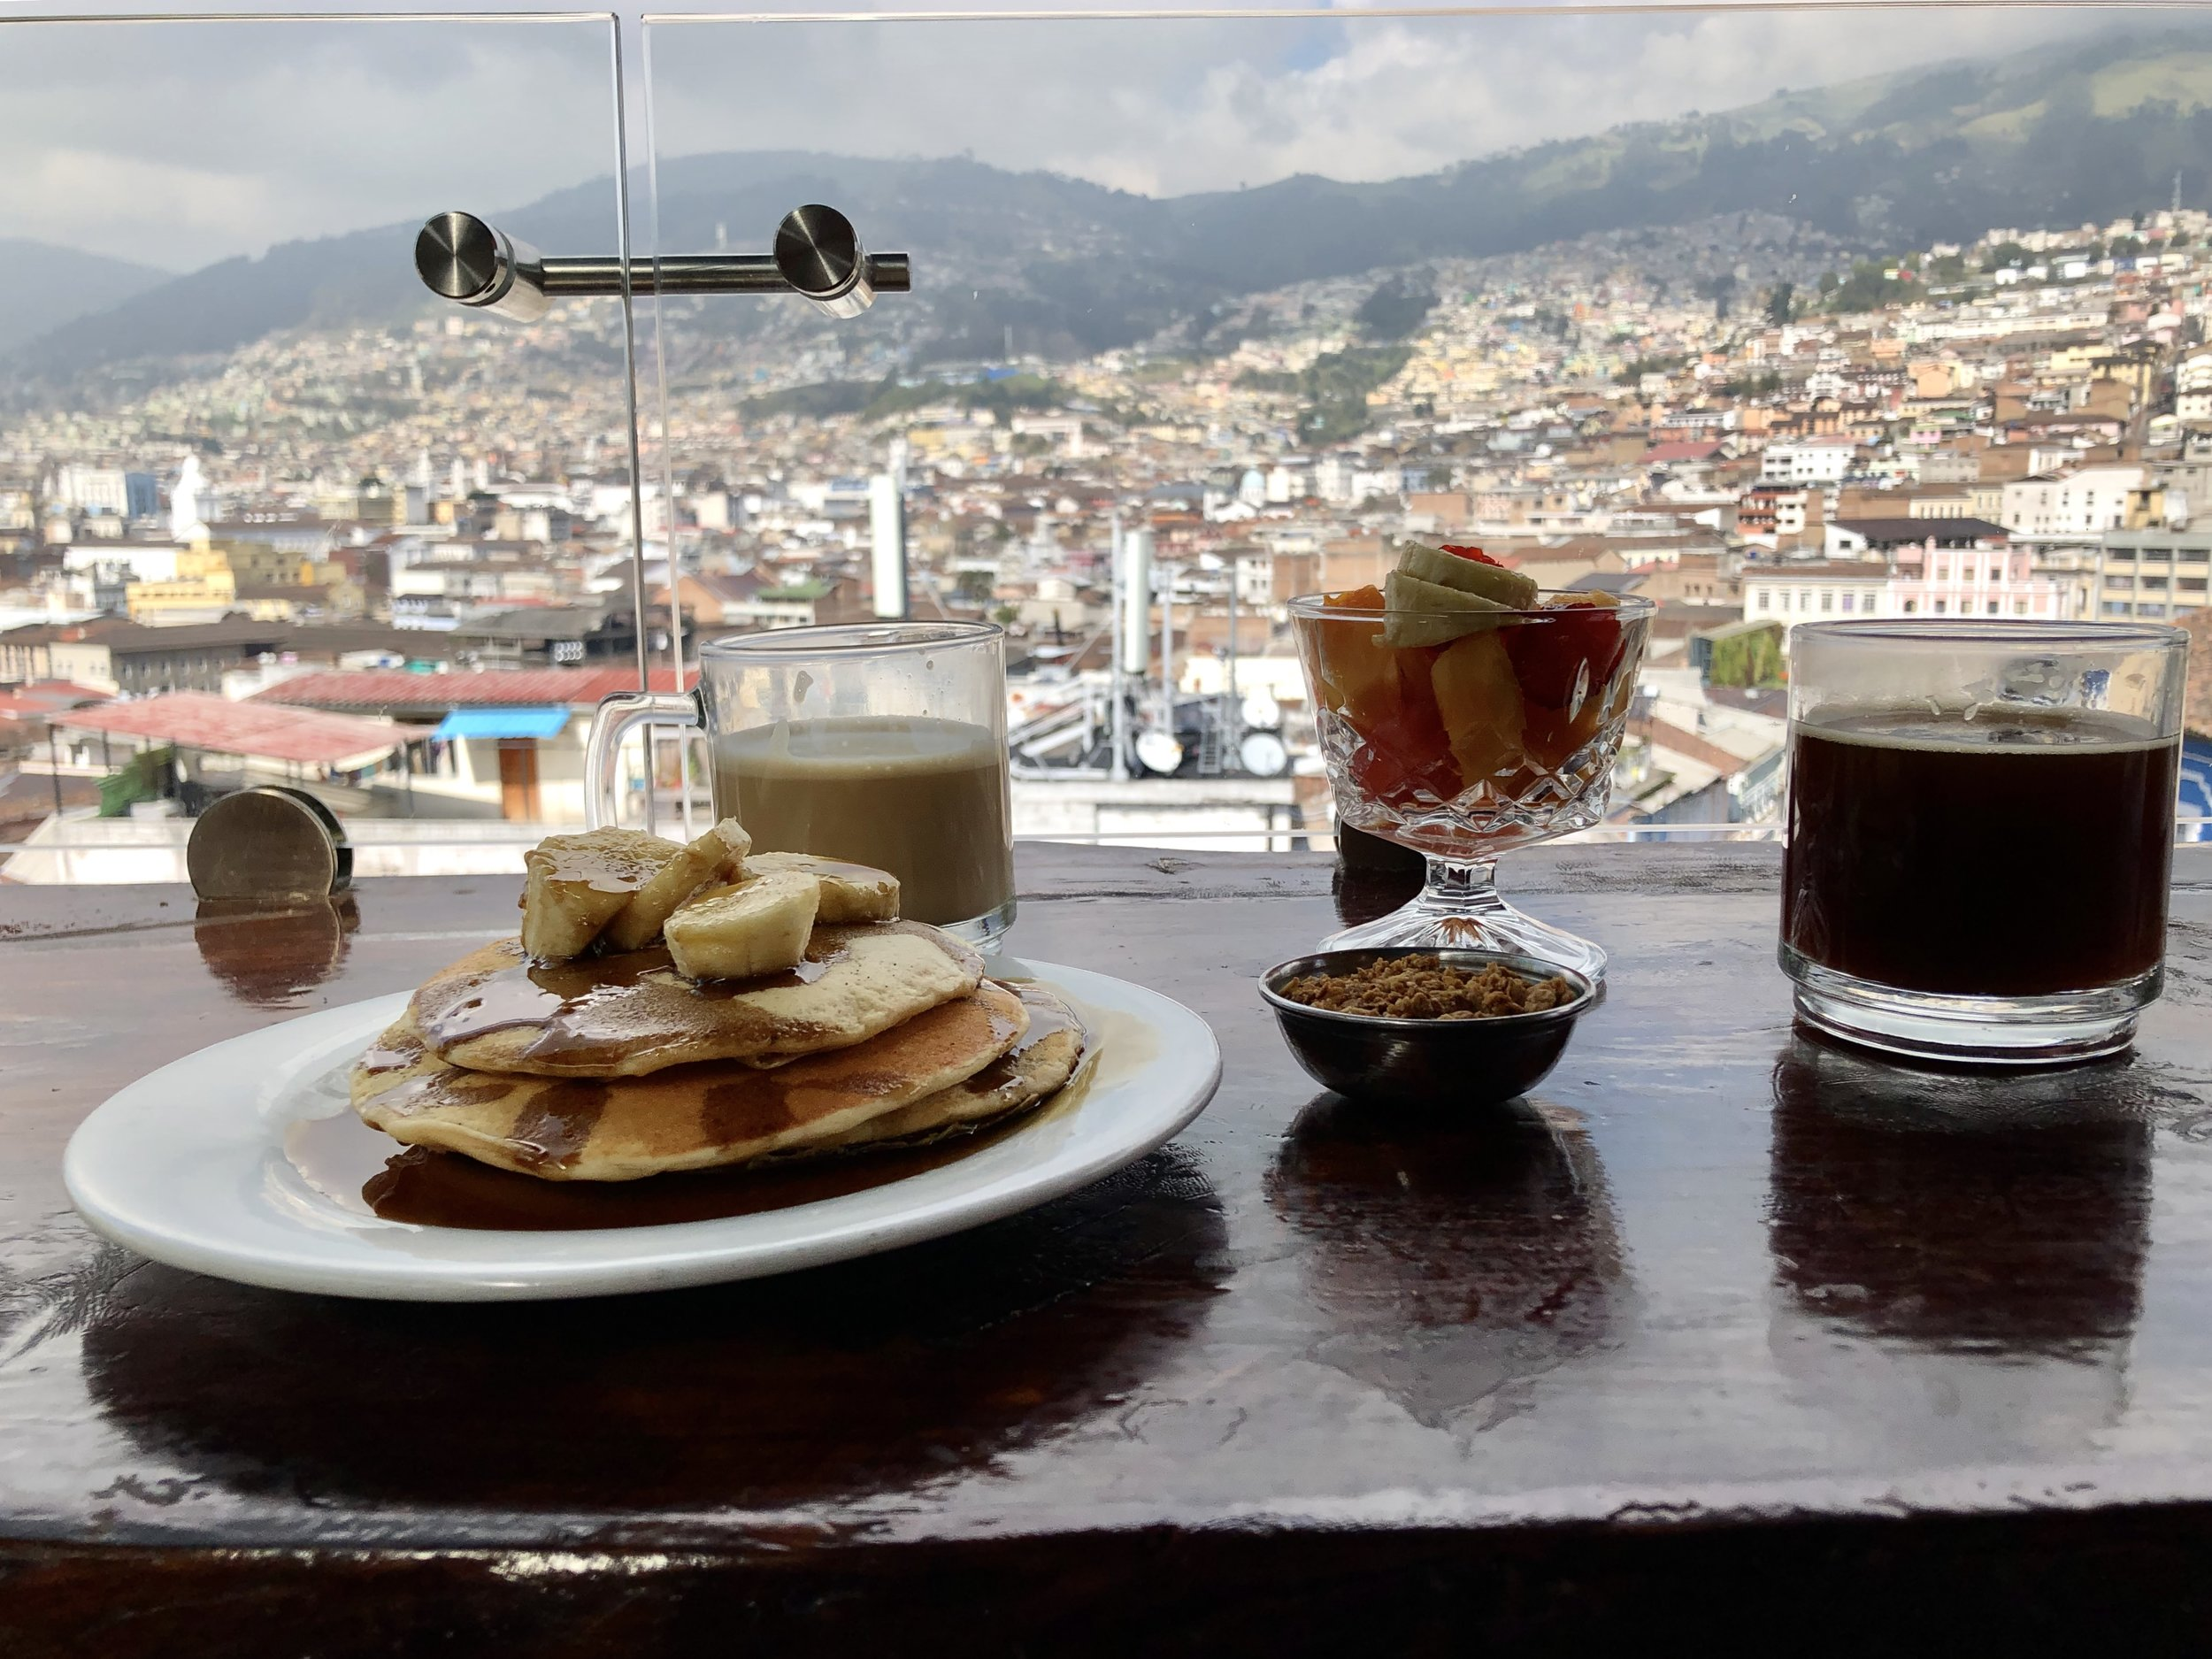 The breakfast and view wasn't bad at Secret Garden in Quito either.